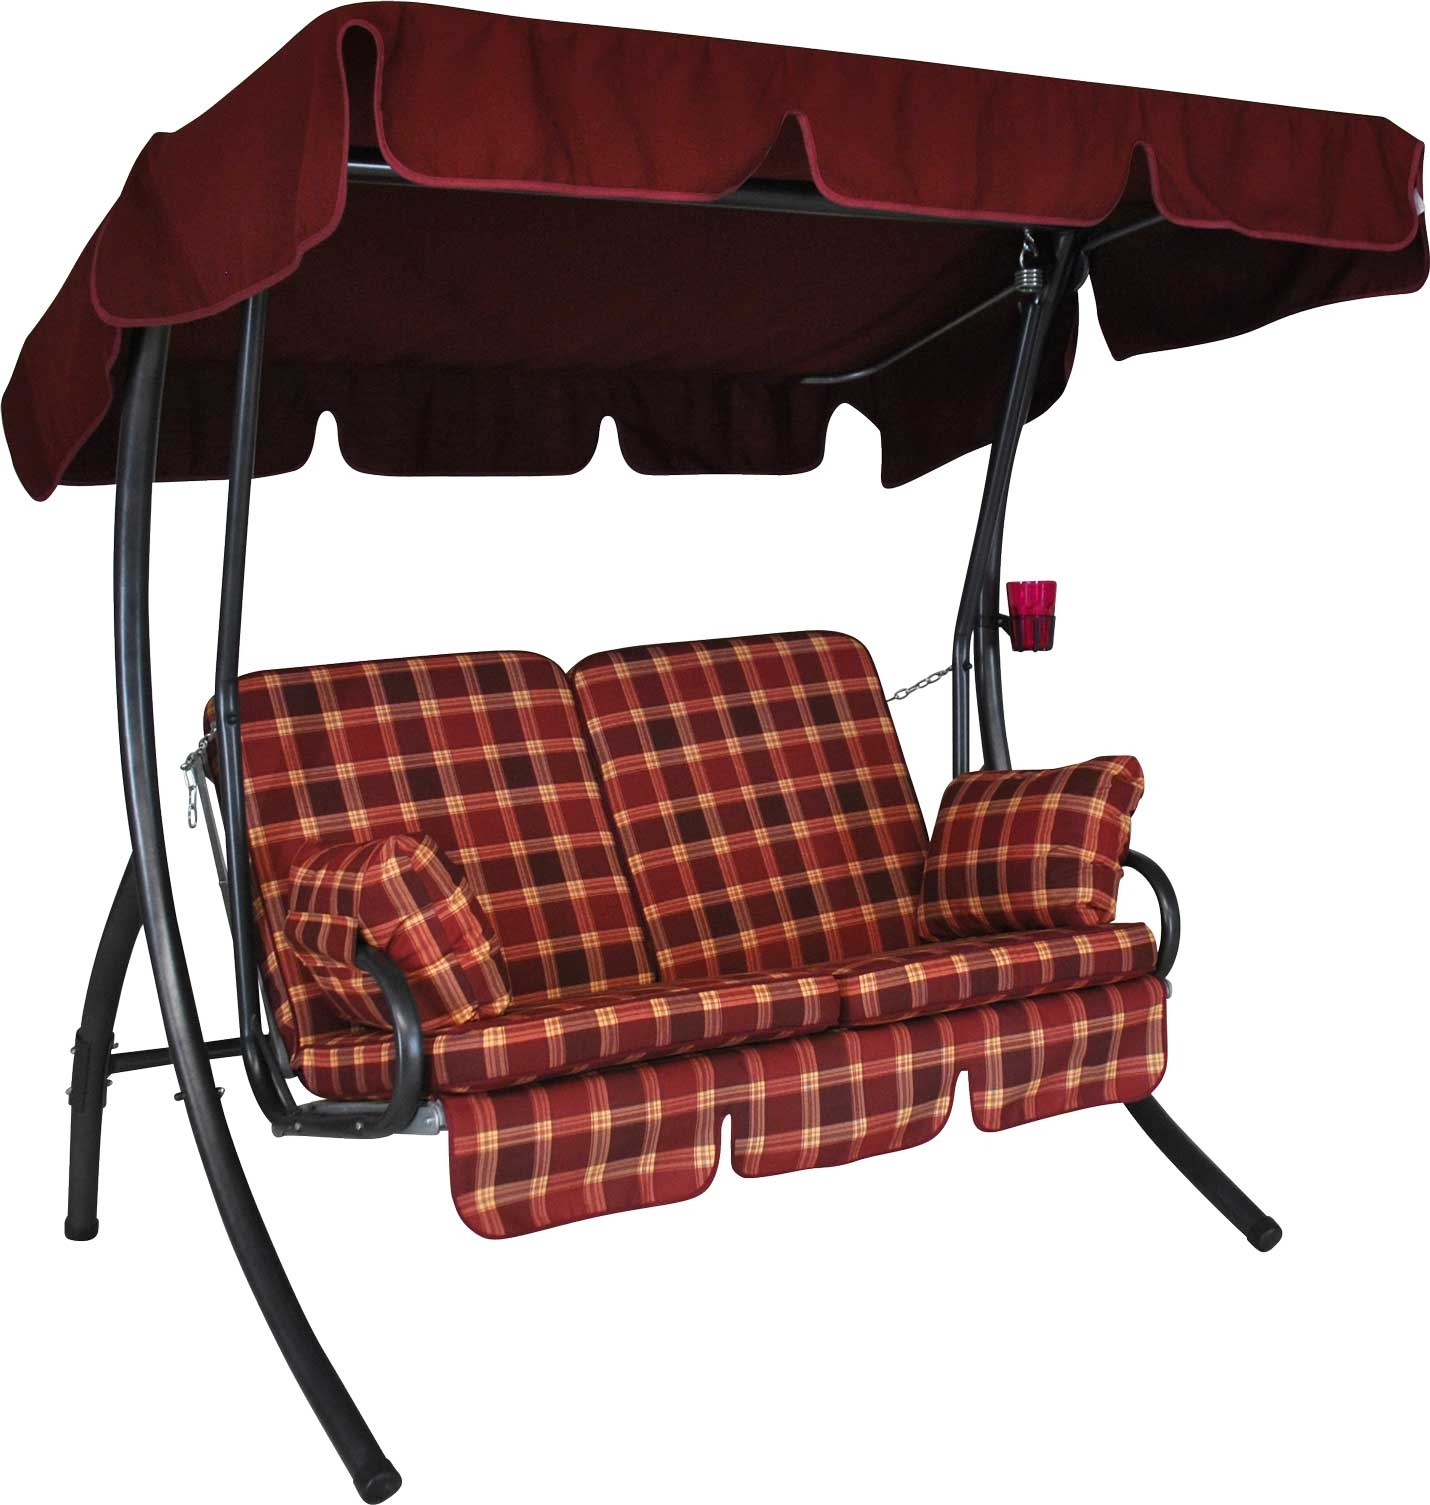 Angerer Hollywoodschaukel 2-Sitzer Comfort Rio bordeaux